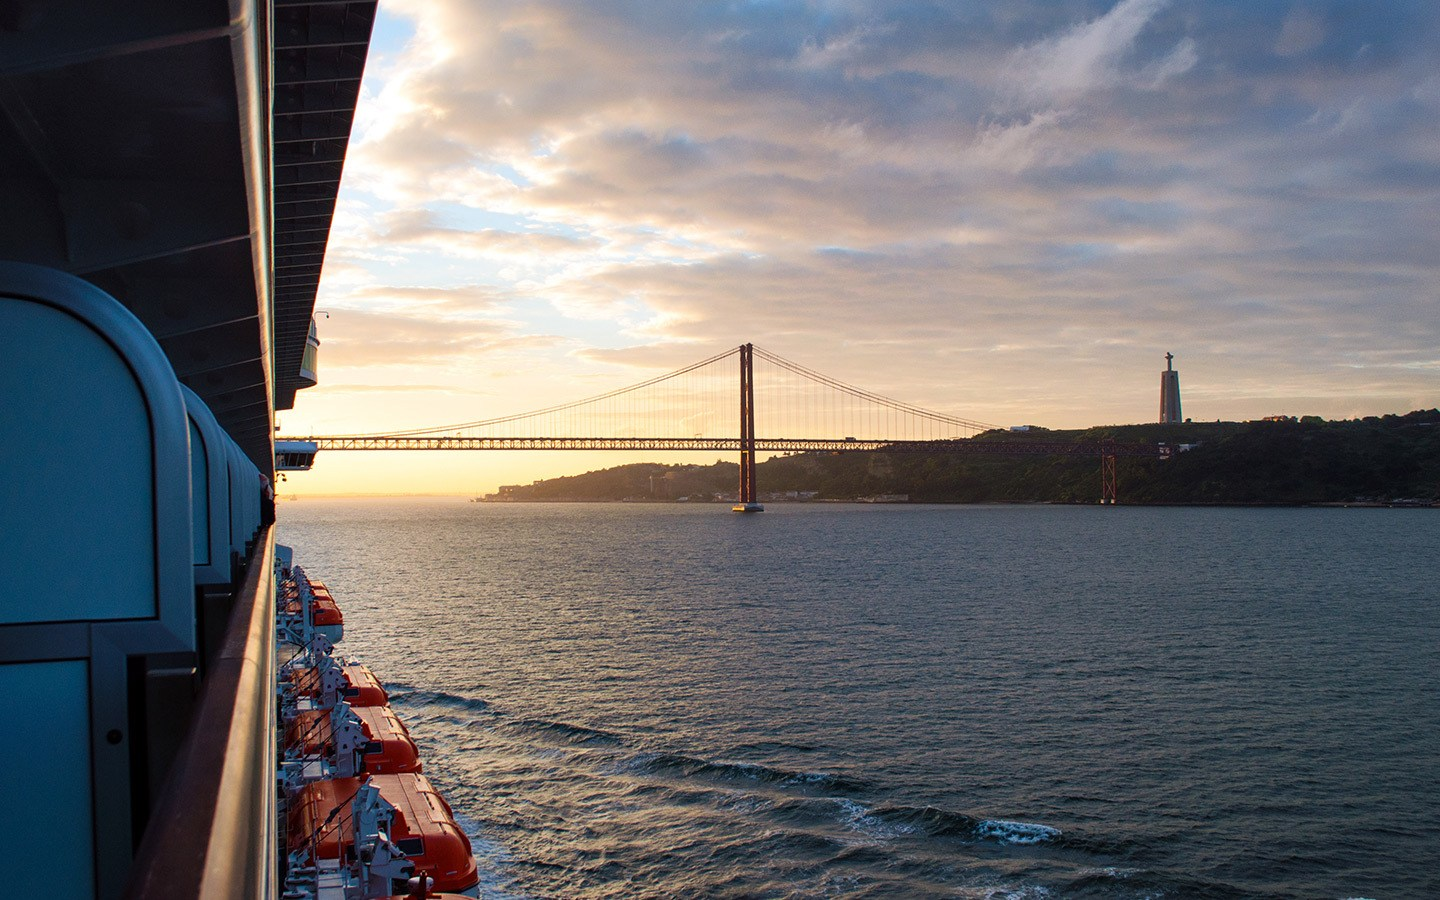 Sunrise in Lisbon froma P&O Canary Islands cruise